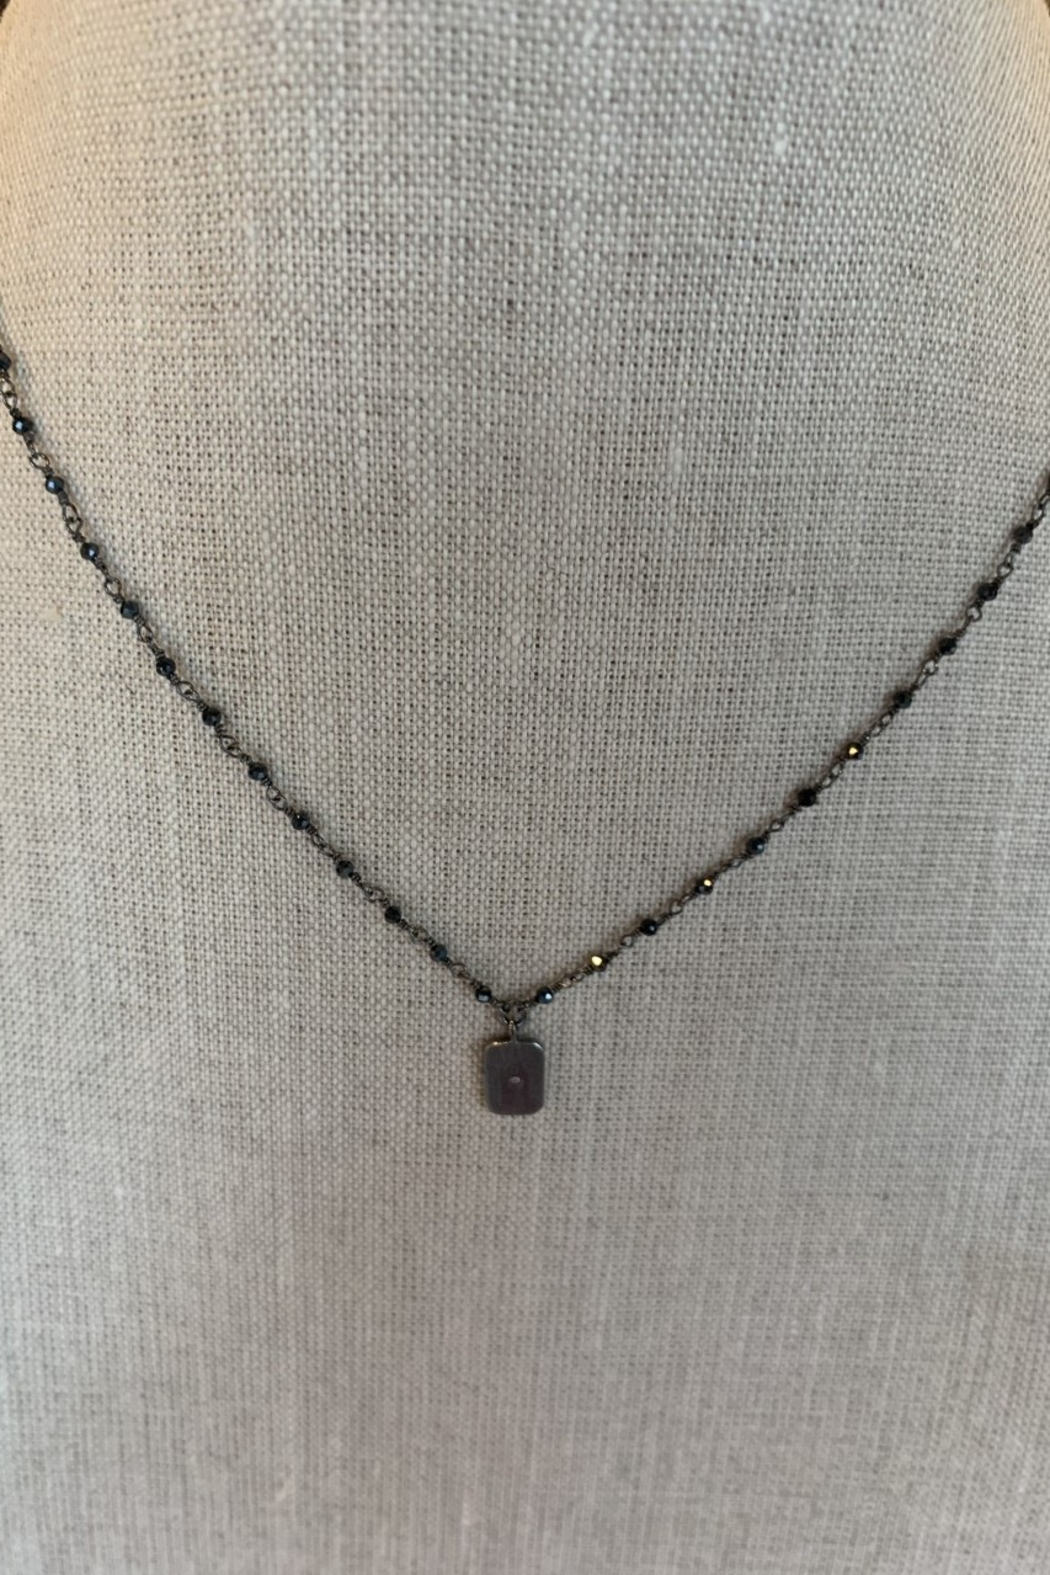 Ela Rae Antique Rhodium Necklace - Main Image